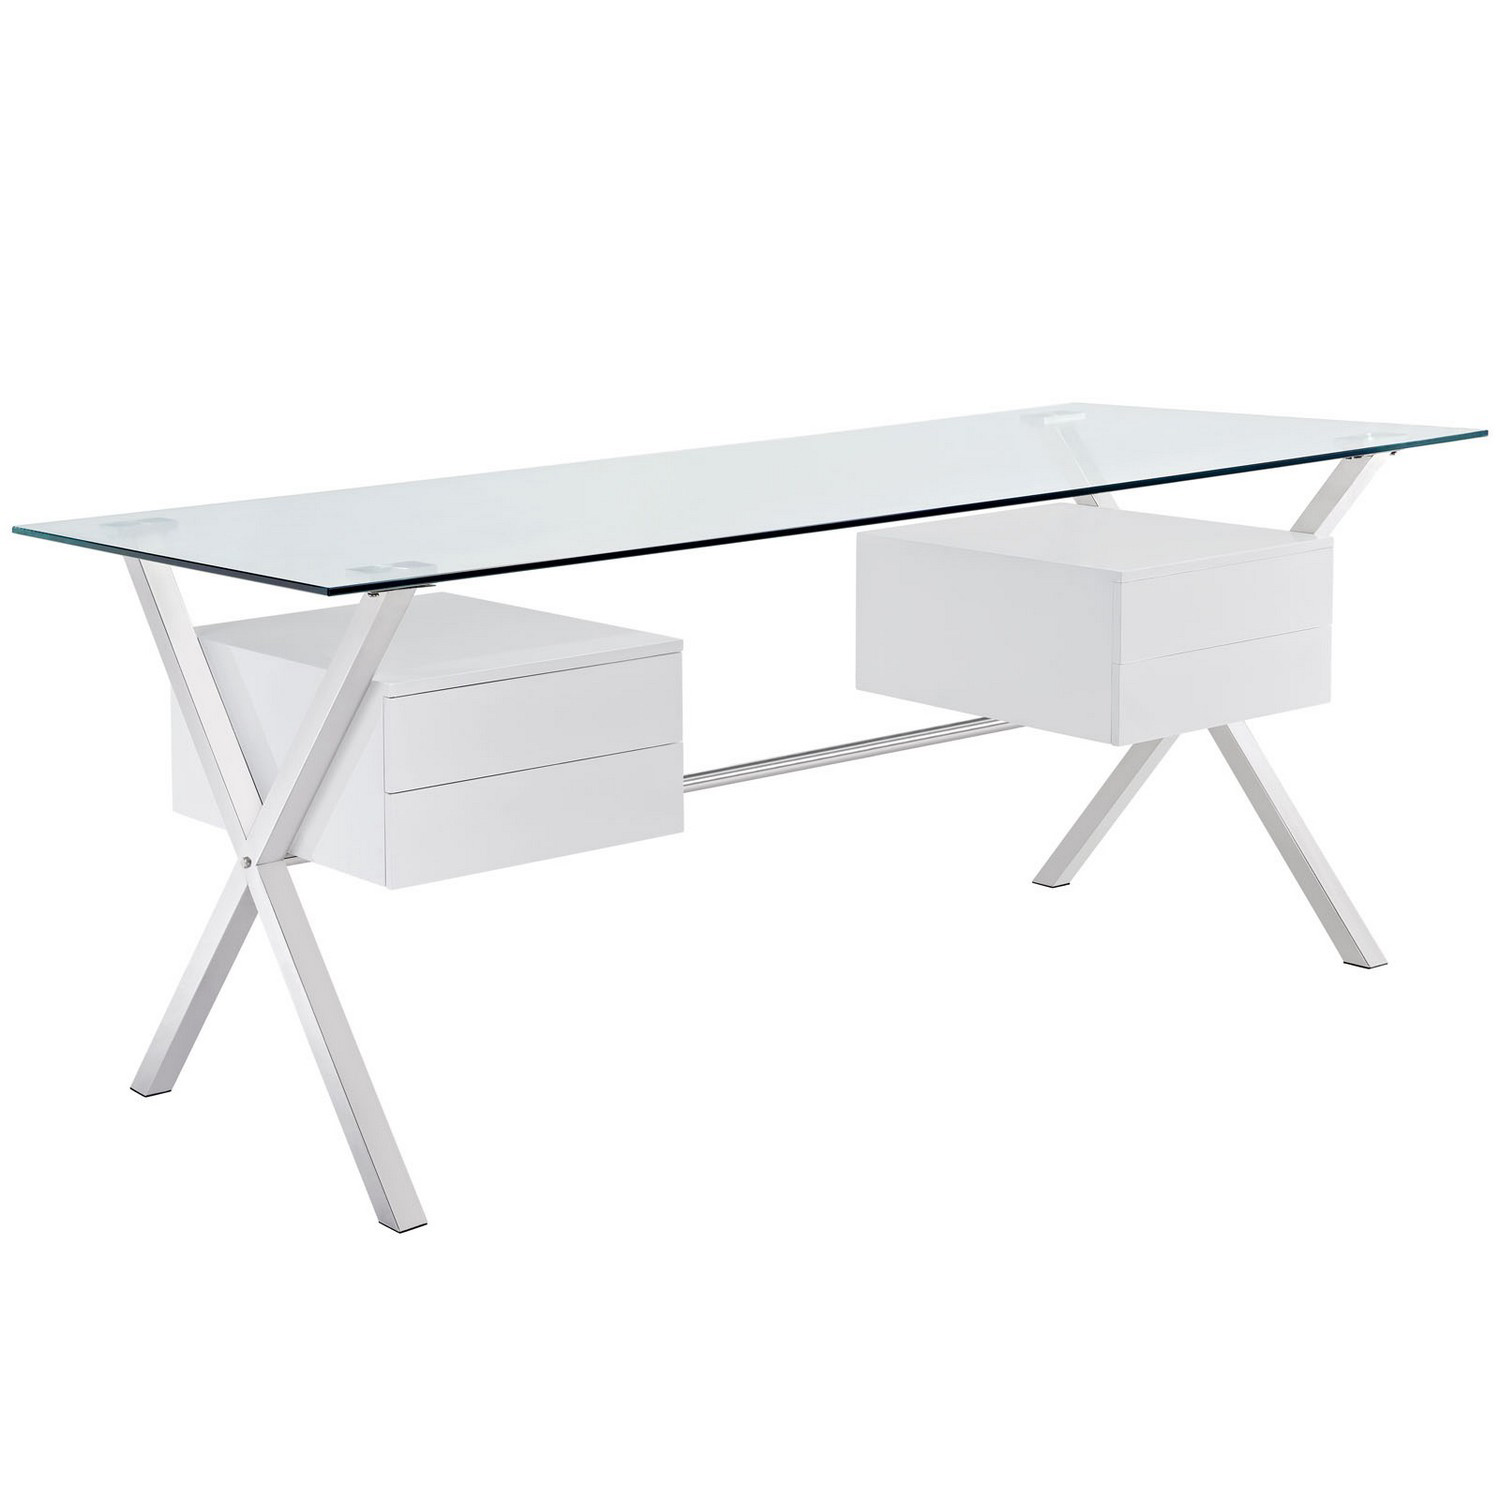 Modway Abeyance Office Desk - White